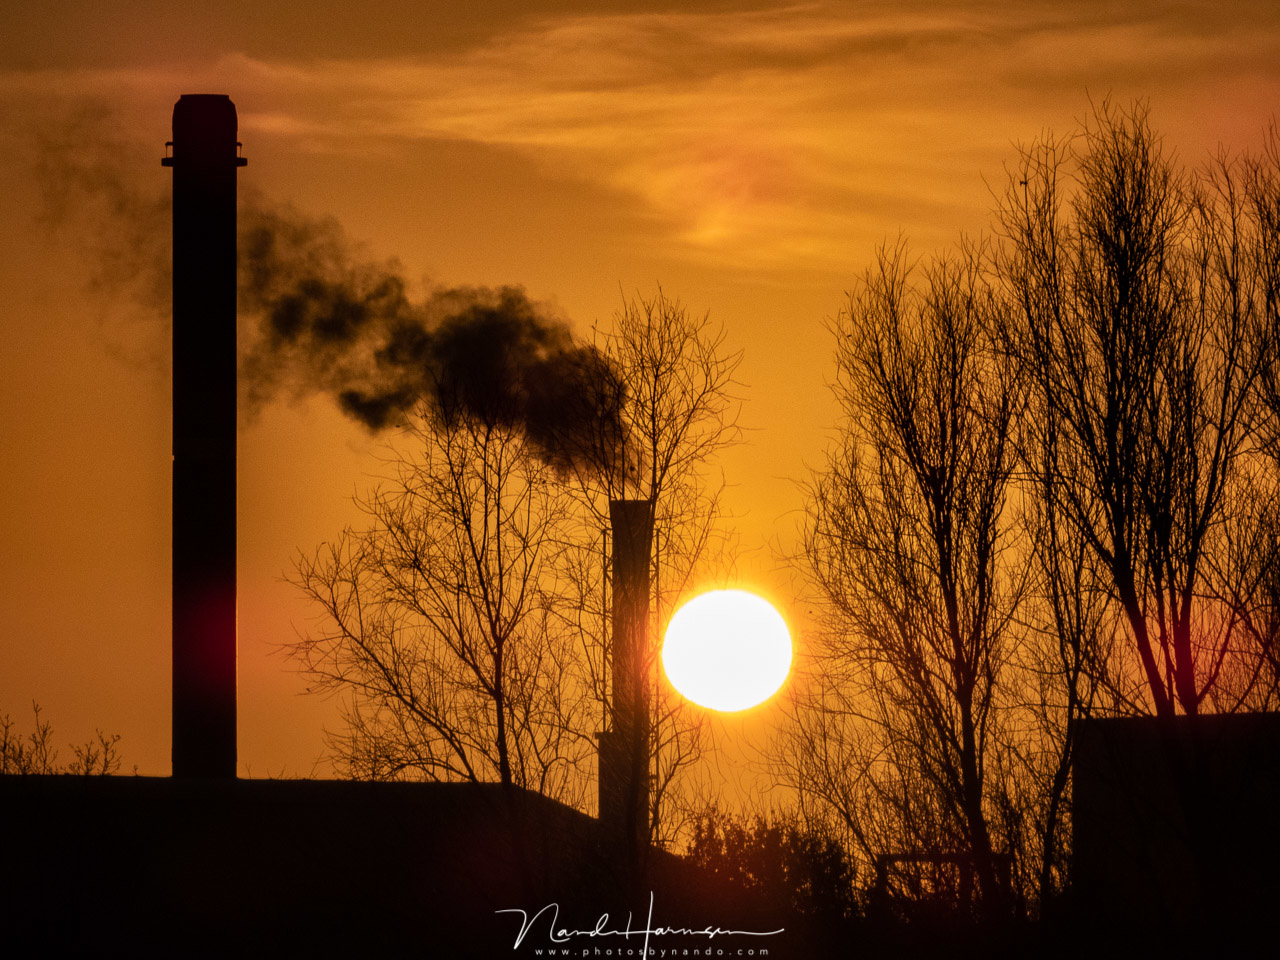 An industrial sunrise. This image allows a base ISO level. Therefor the quality is reasonable. (345mm (FF equivalent) - ISO100 - f/8 - 1/2500)